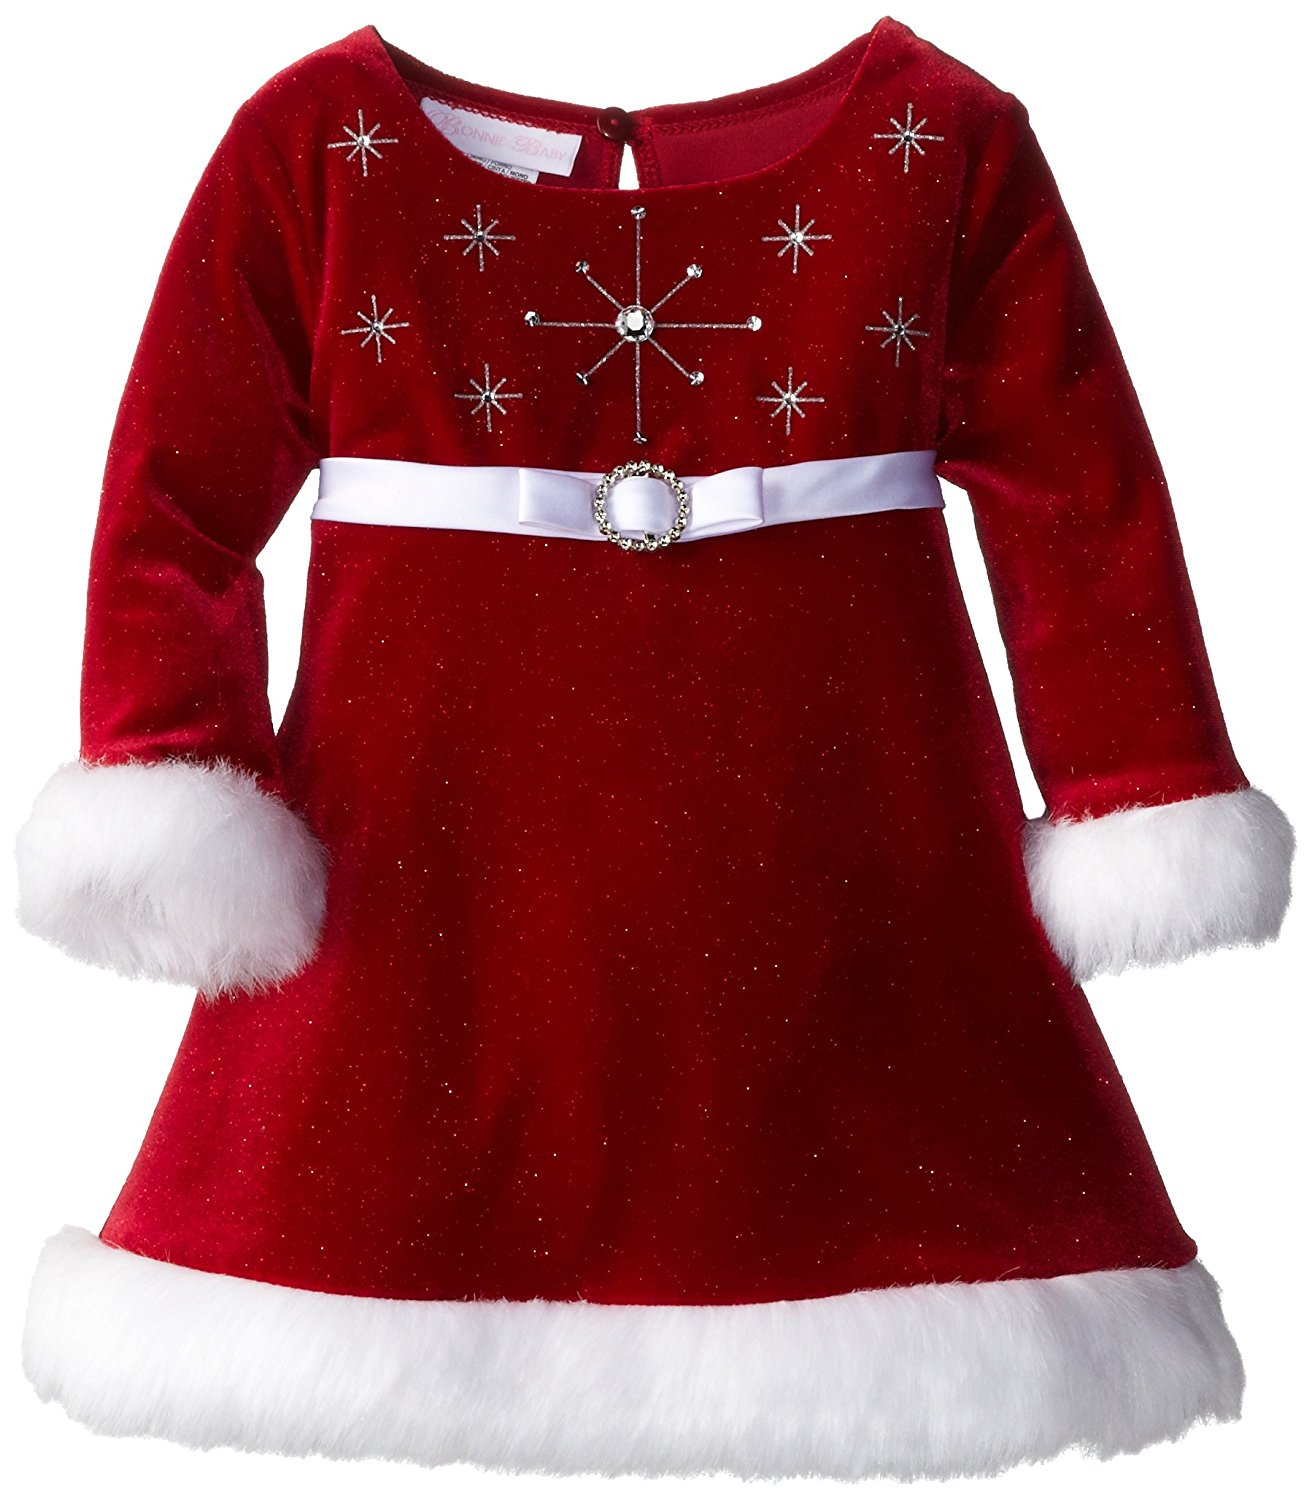 05f155b1fda7 Cute Baby Girl Holiday Dresses - raveitsafe